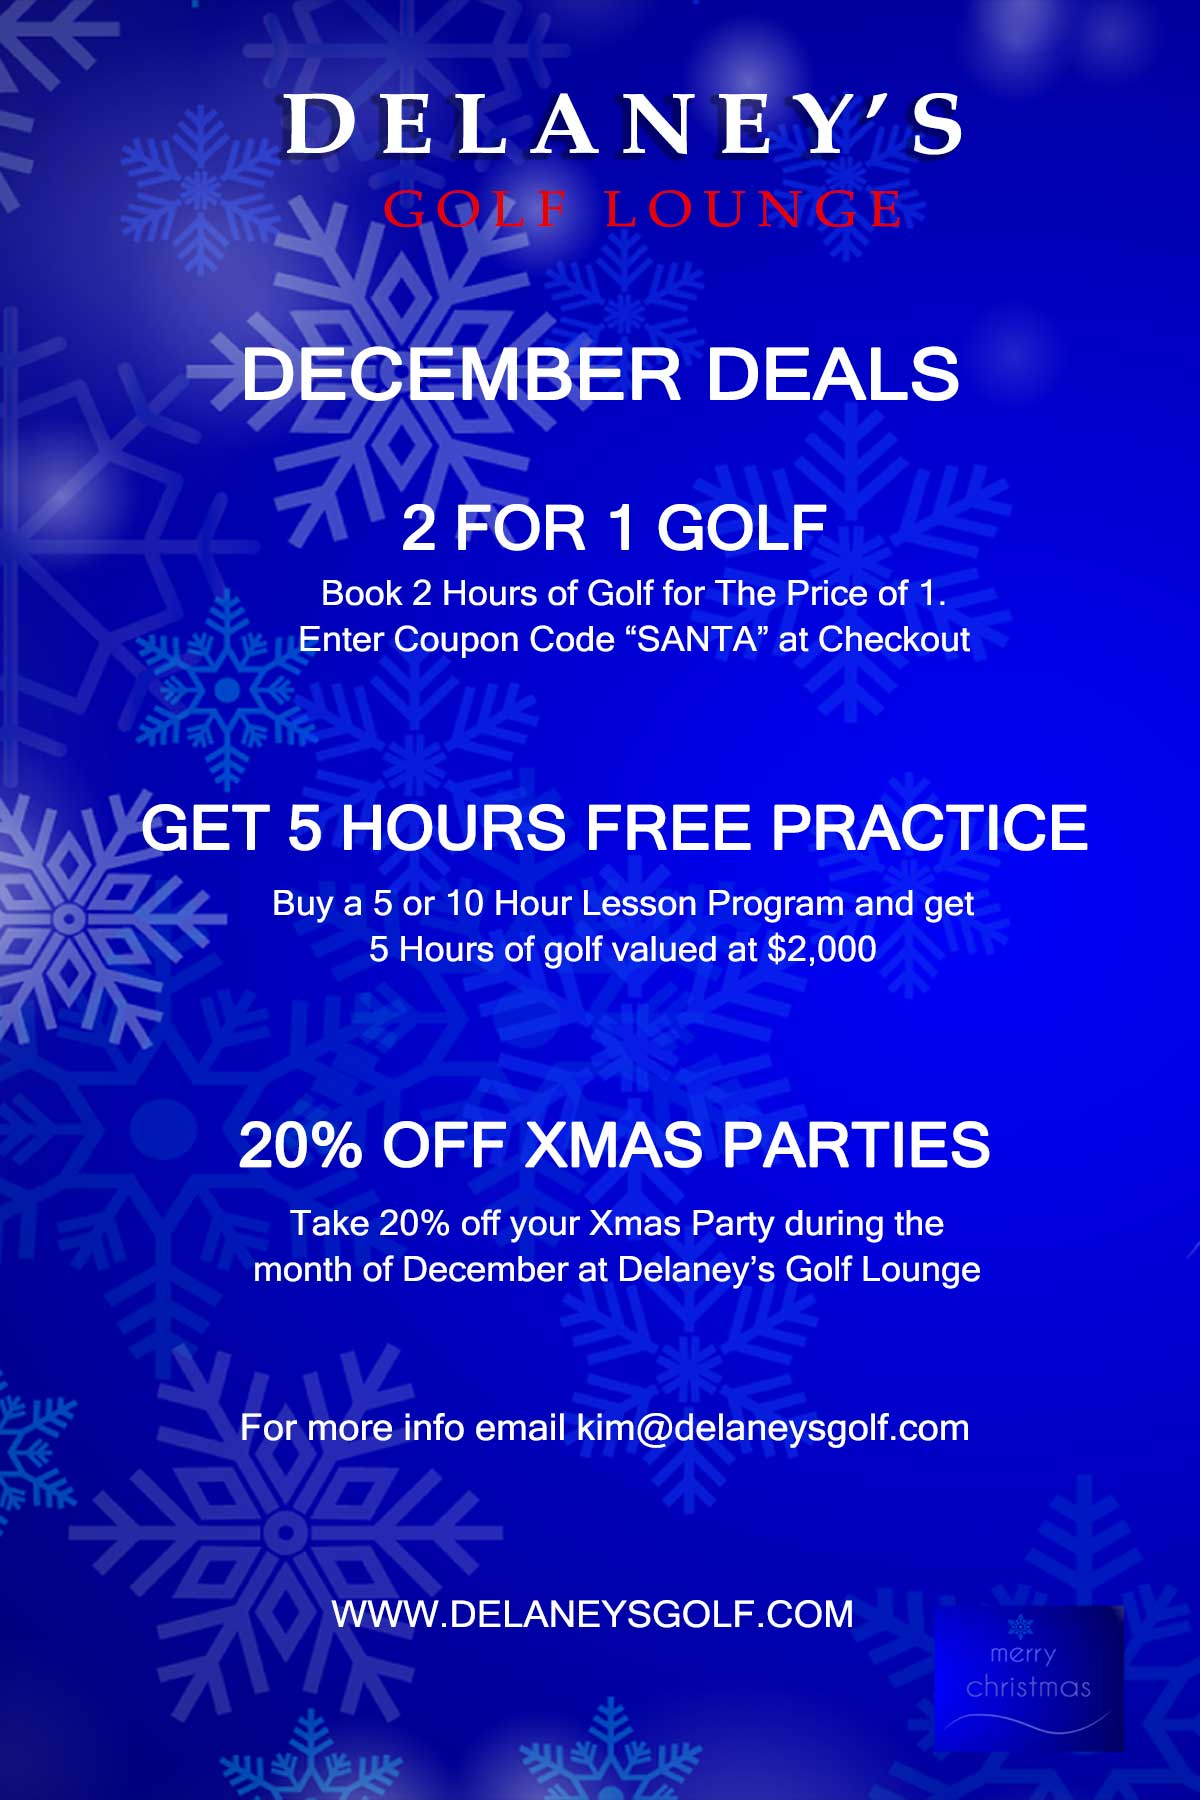 December Specials at Delaneys Golf